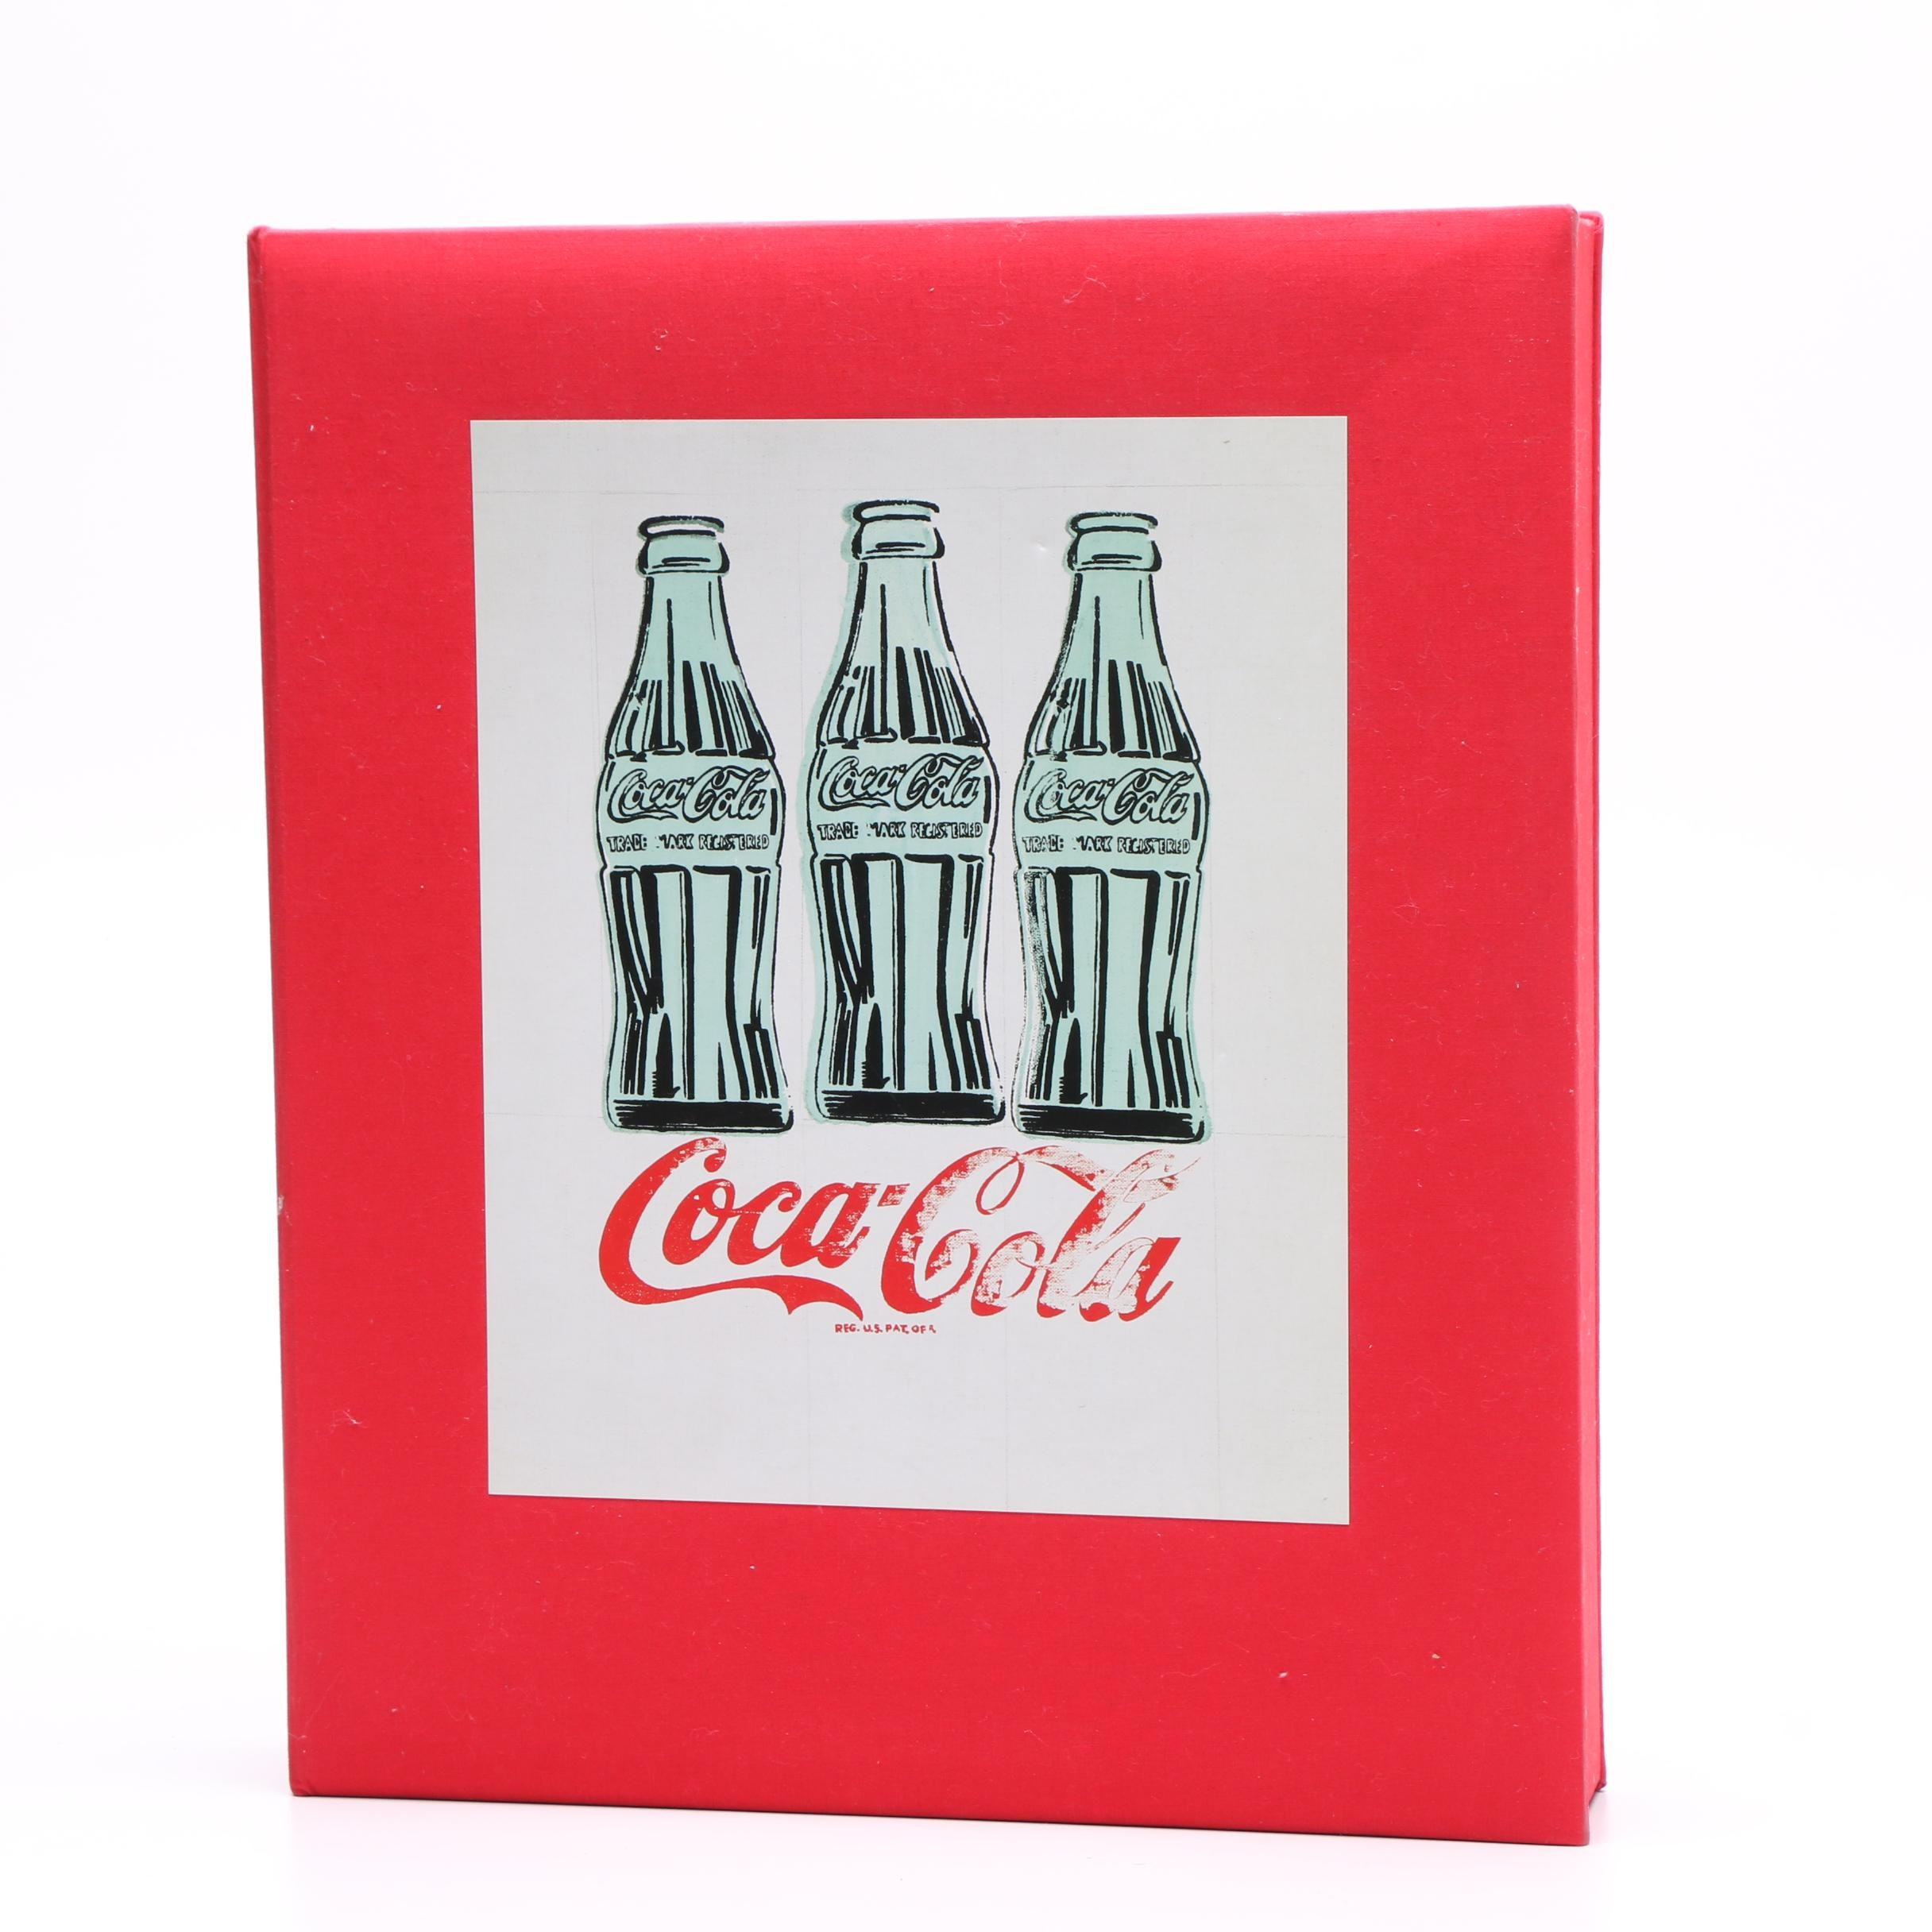 Coca-Cola Special Edition Book with Slipcase